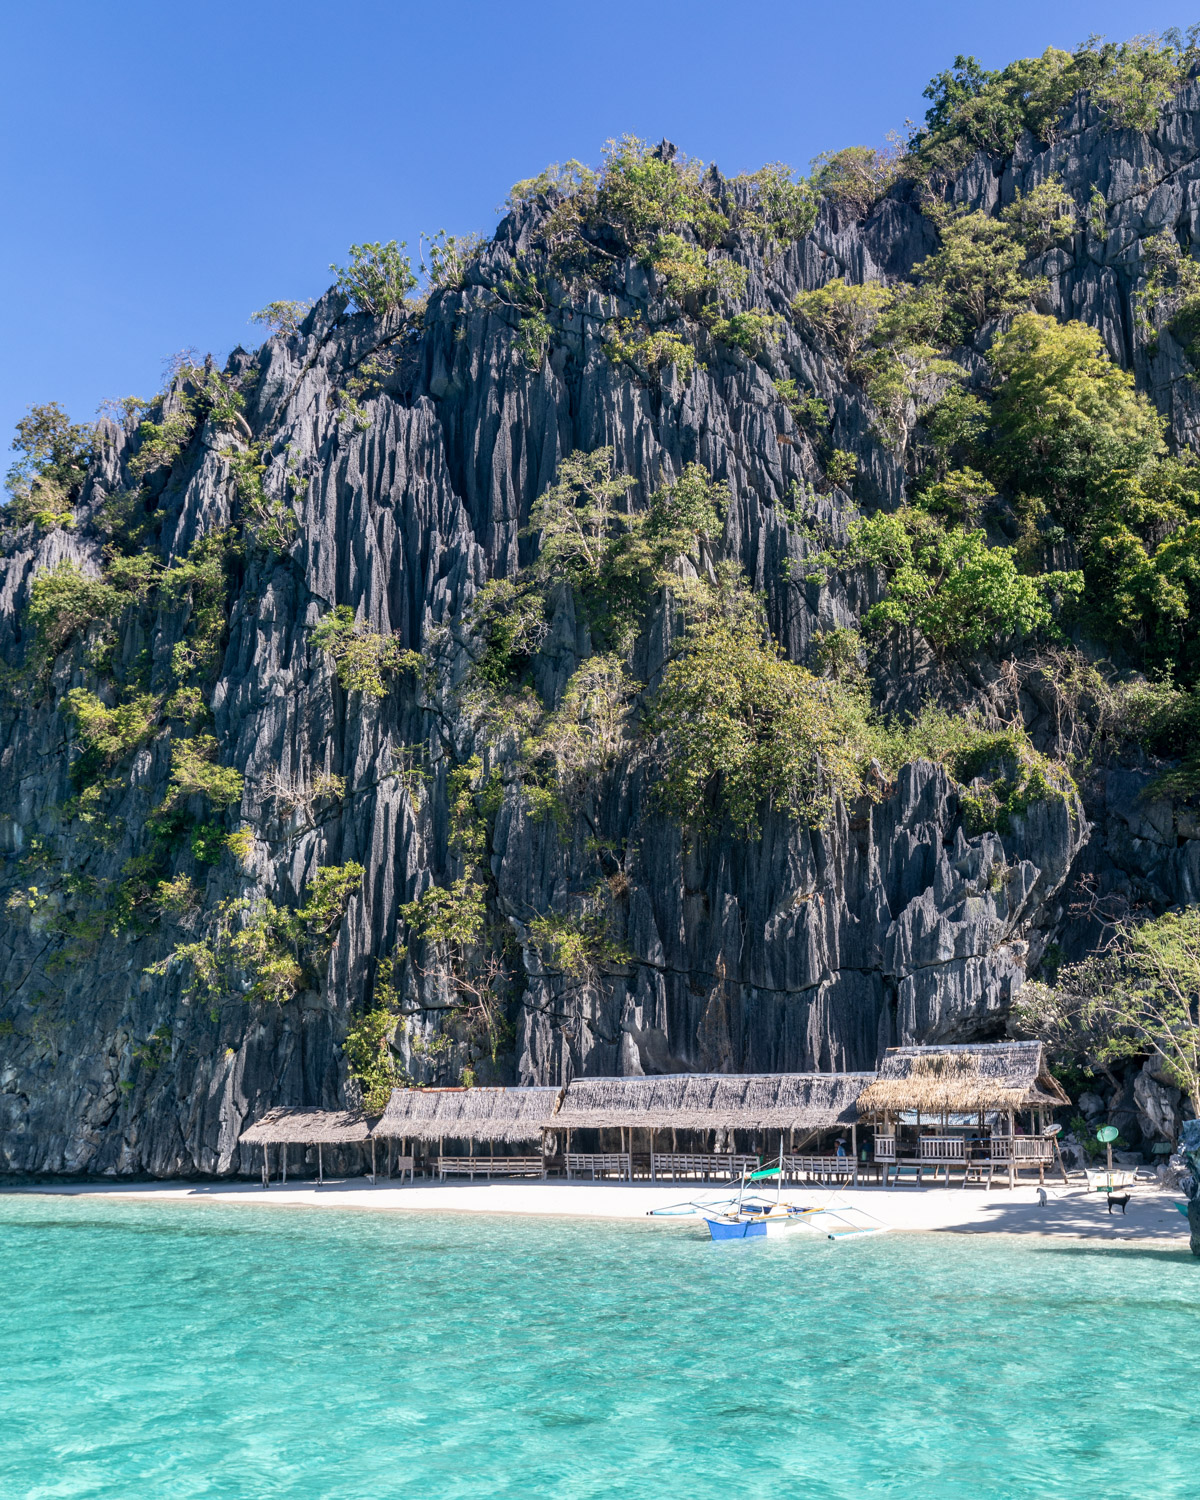 Where to stay in Coron - accommodation on Busuangua